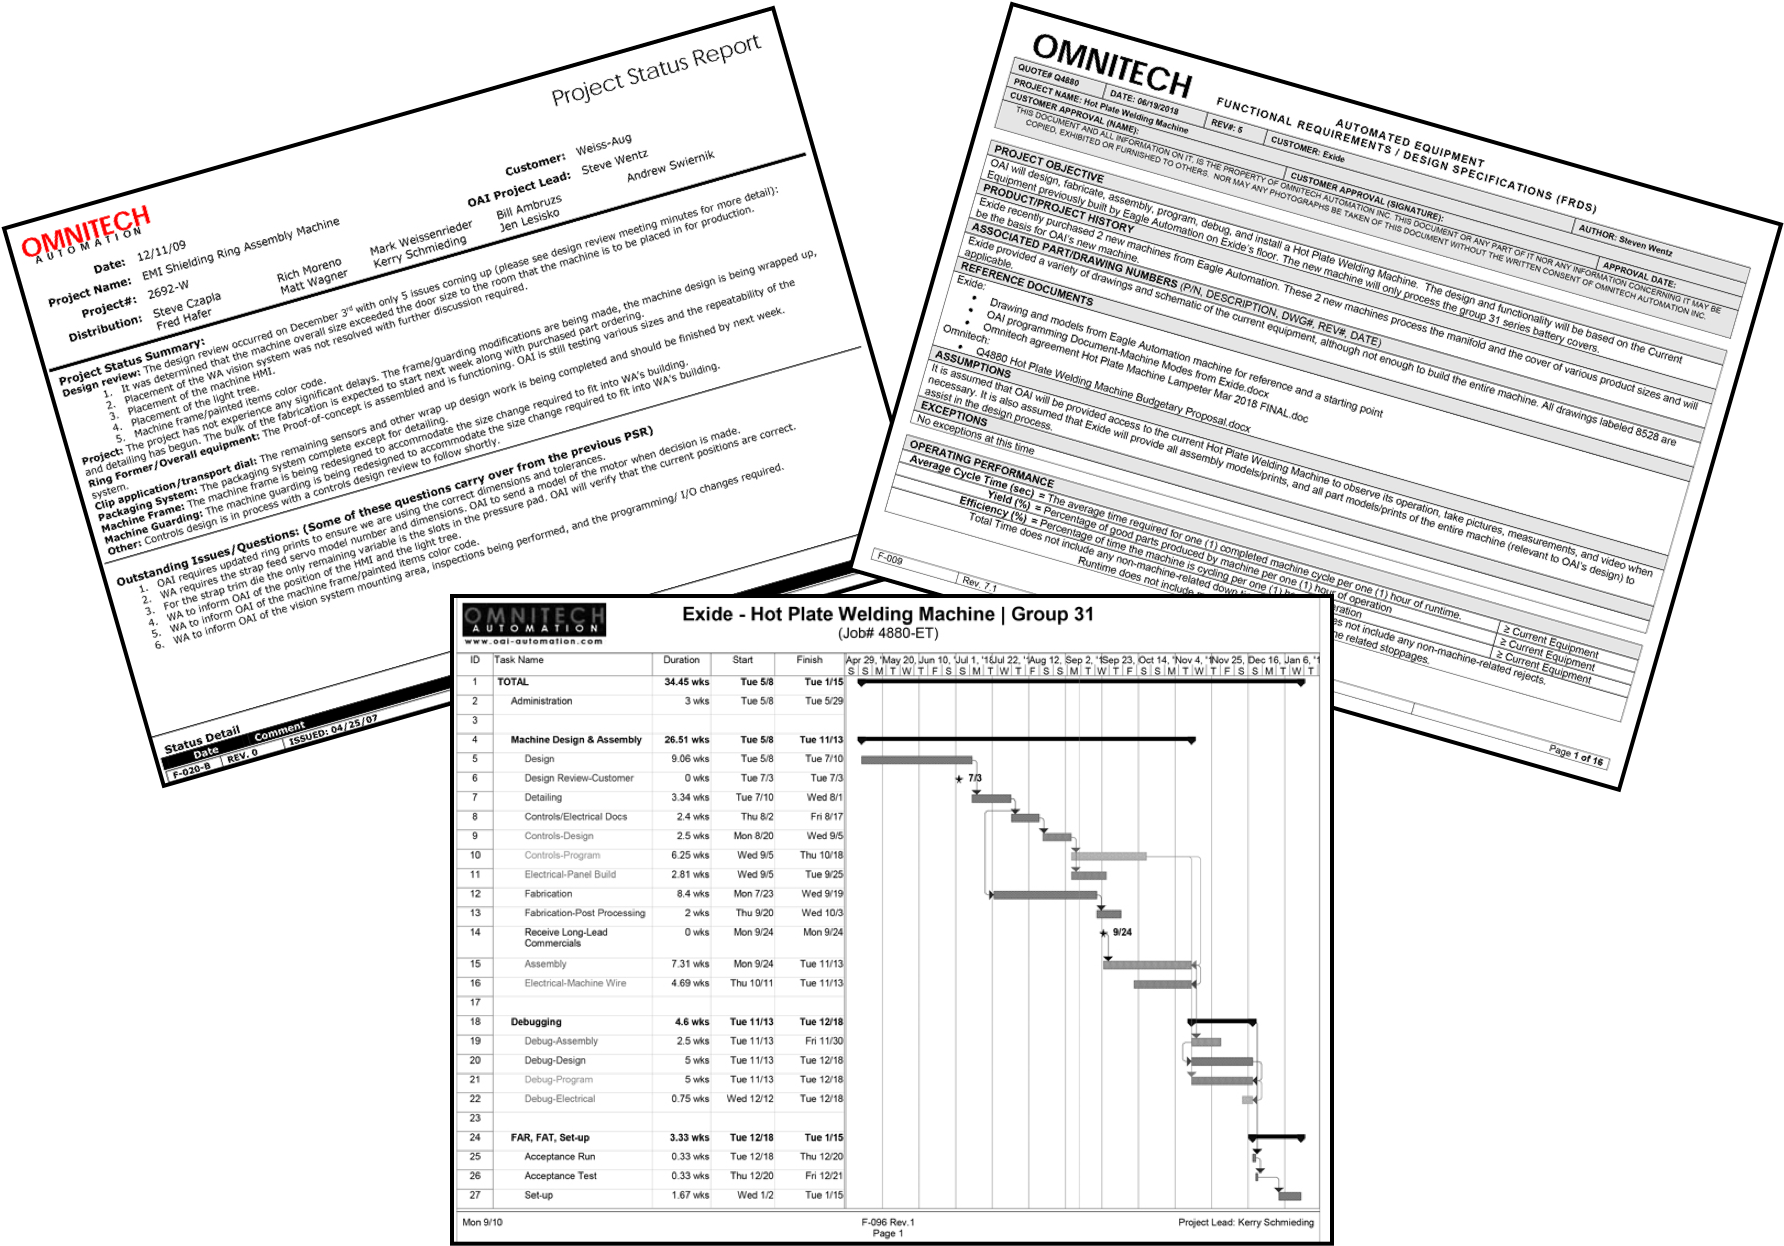 Collage of project management documents